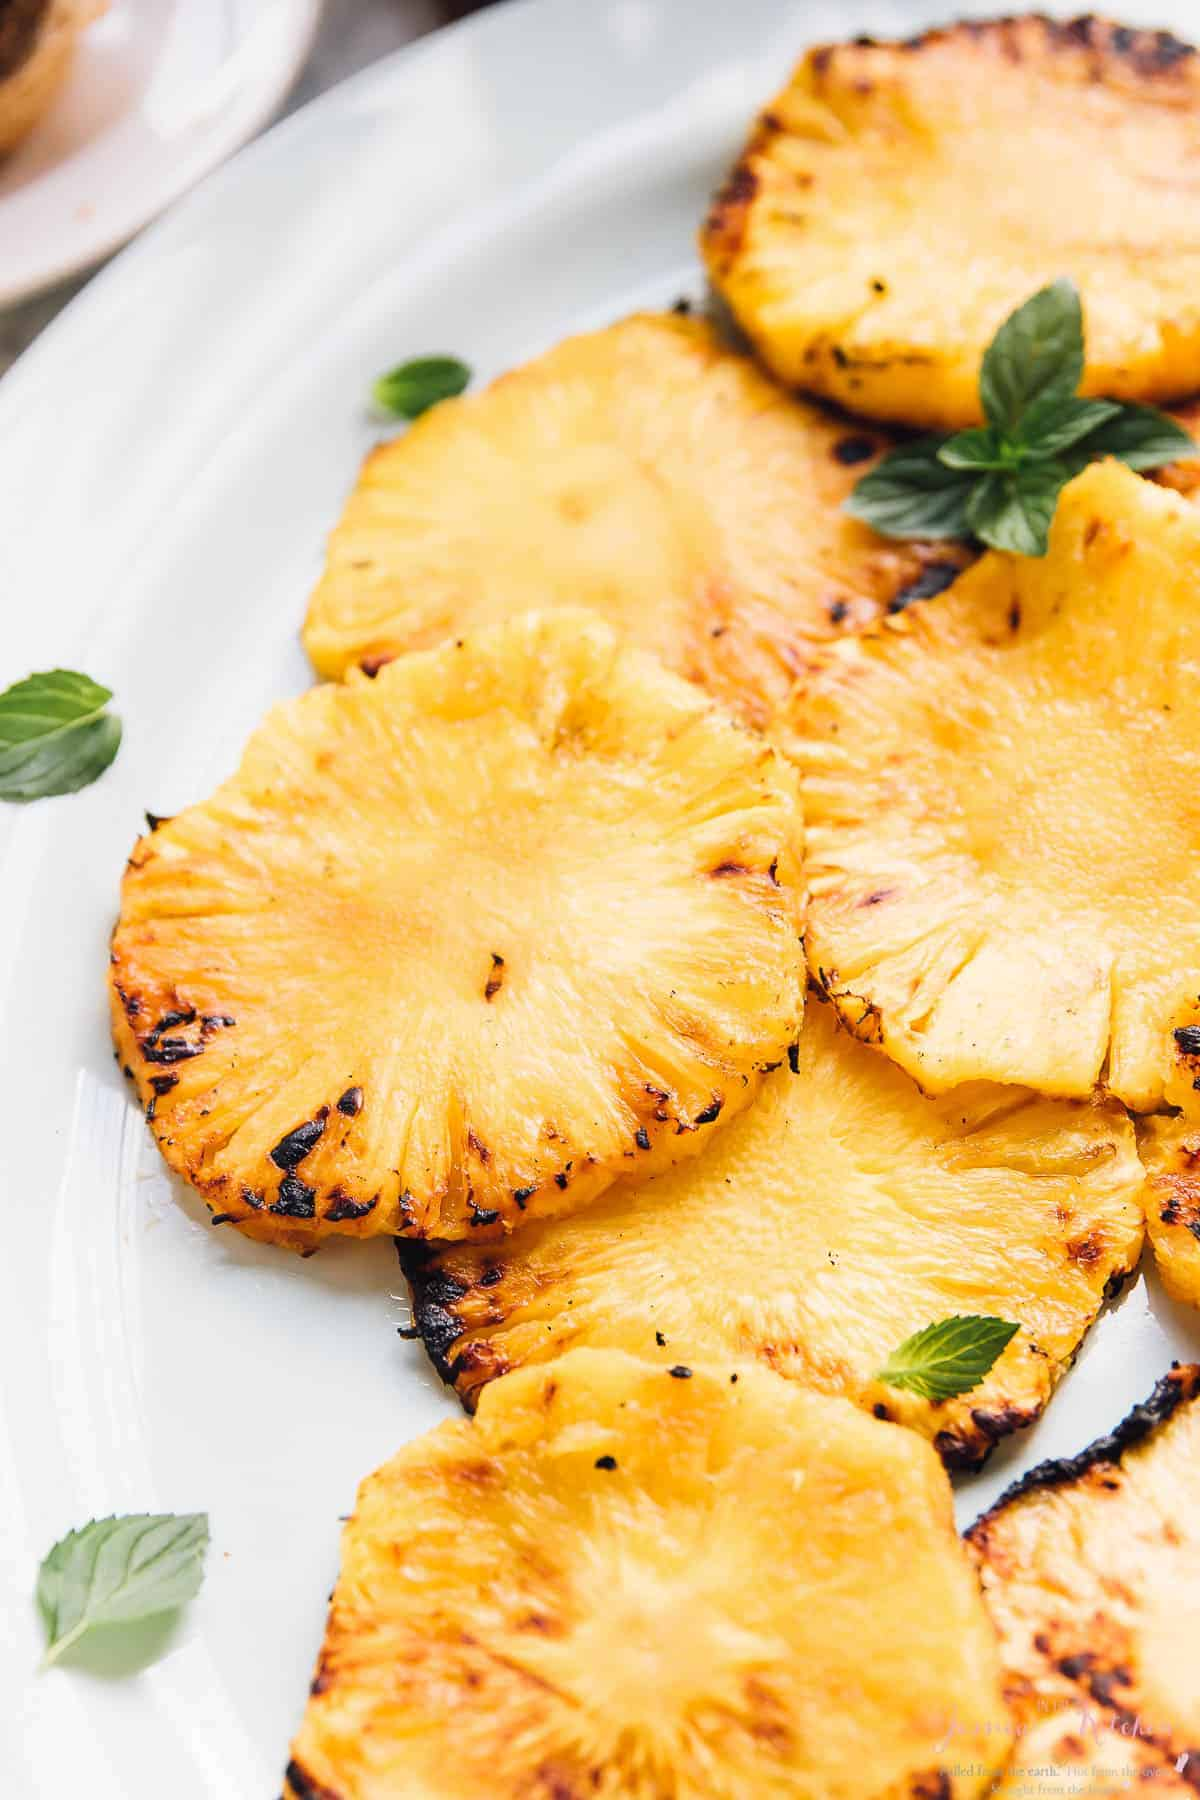 Slices of grilled pineapples on a white dish.